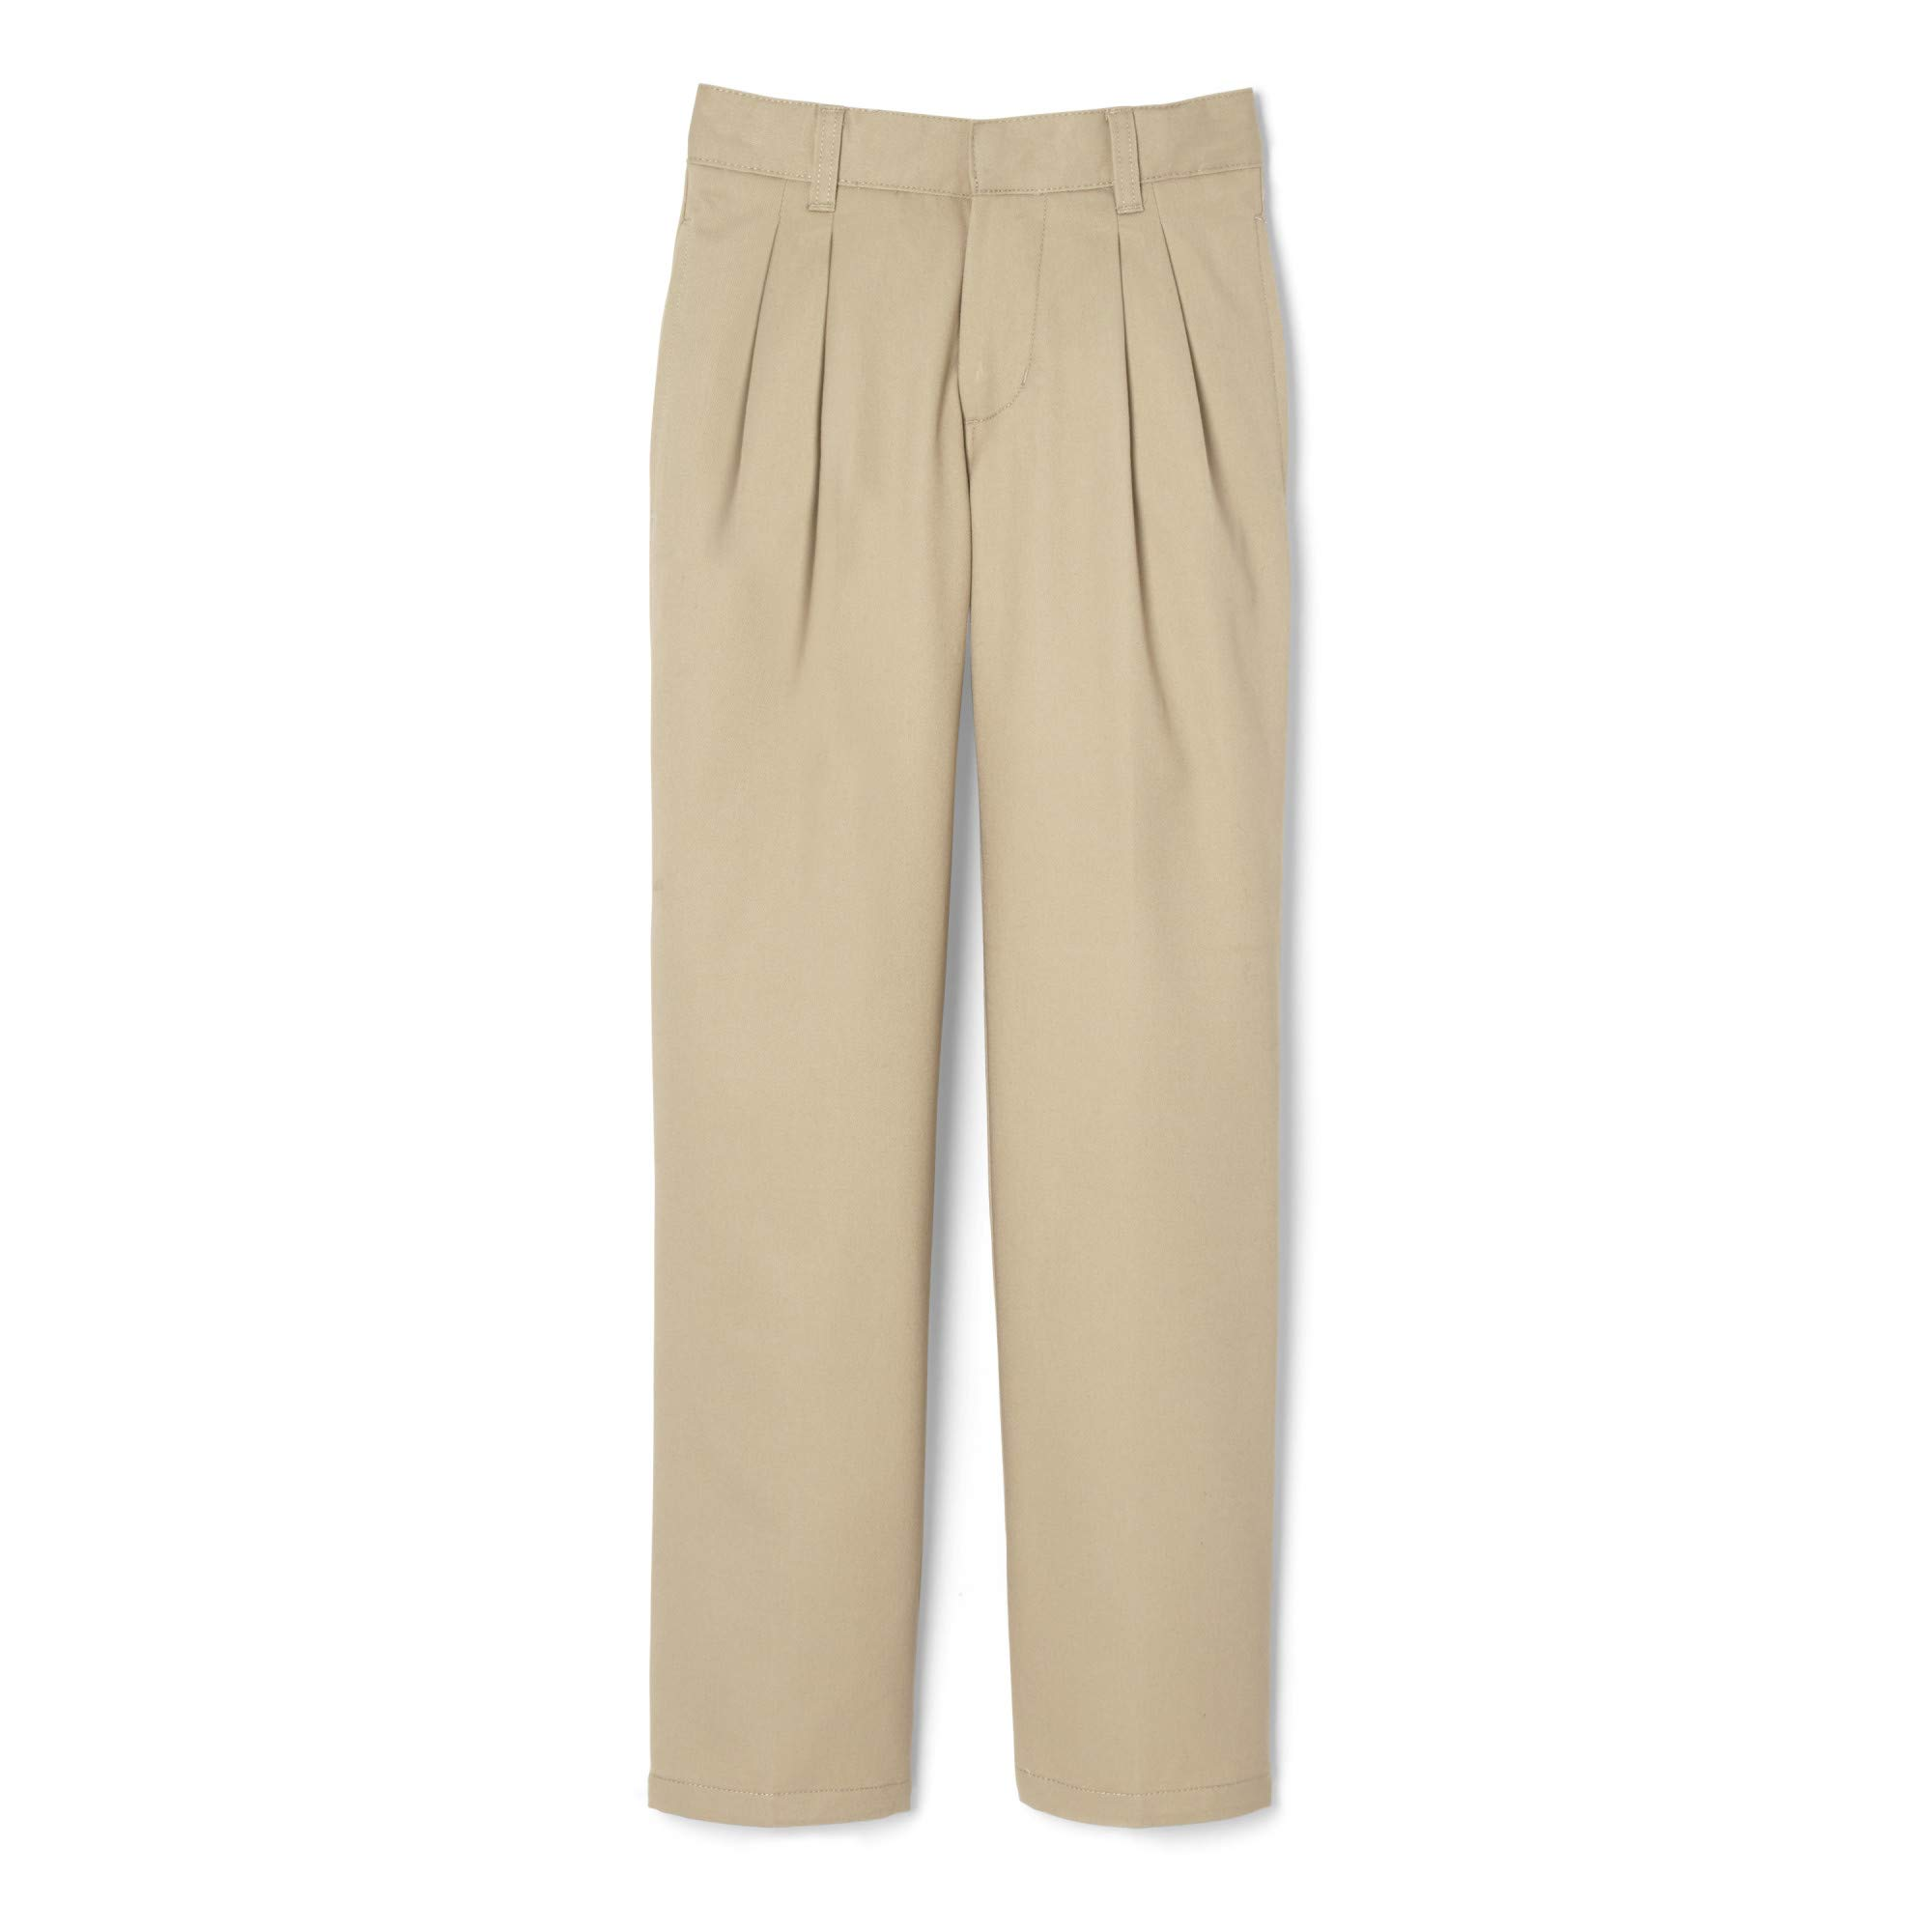 French Toast Big Boys' Pleated Double Knee Pant with Adjustable Waist, Khaki, 8 by French Toast